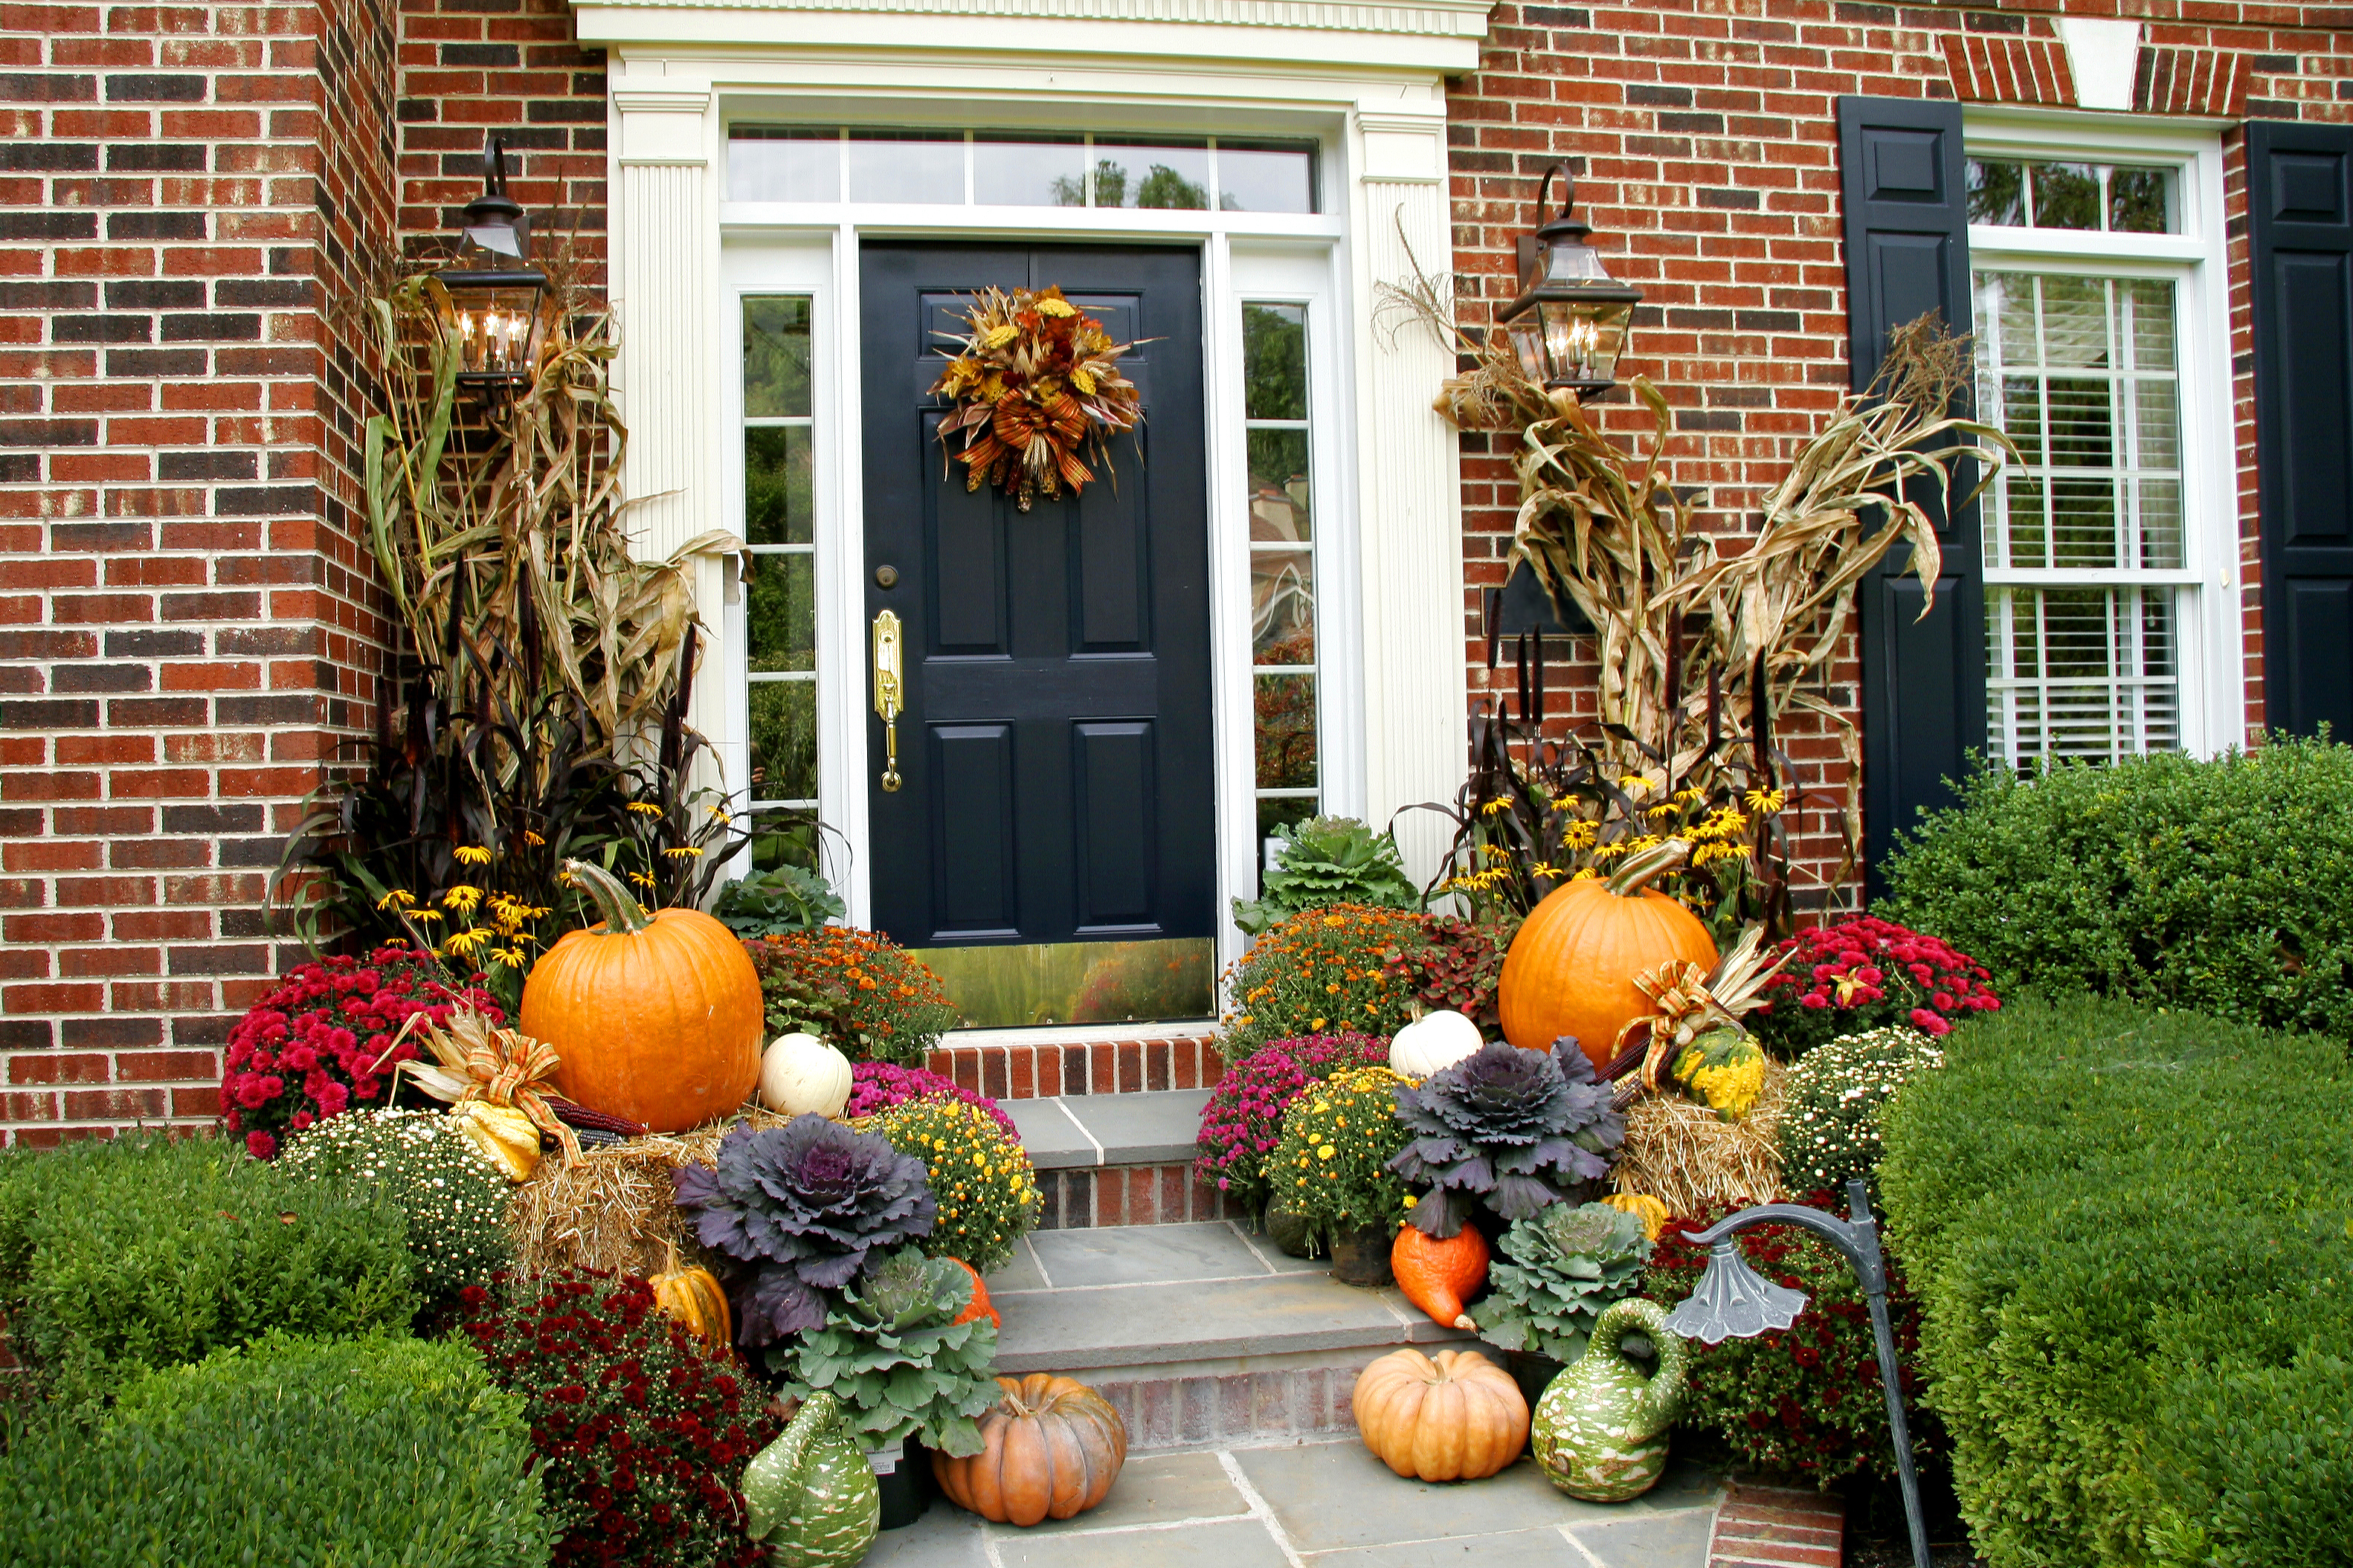 10 fall home decorating ideas - Fall House Decorations